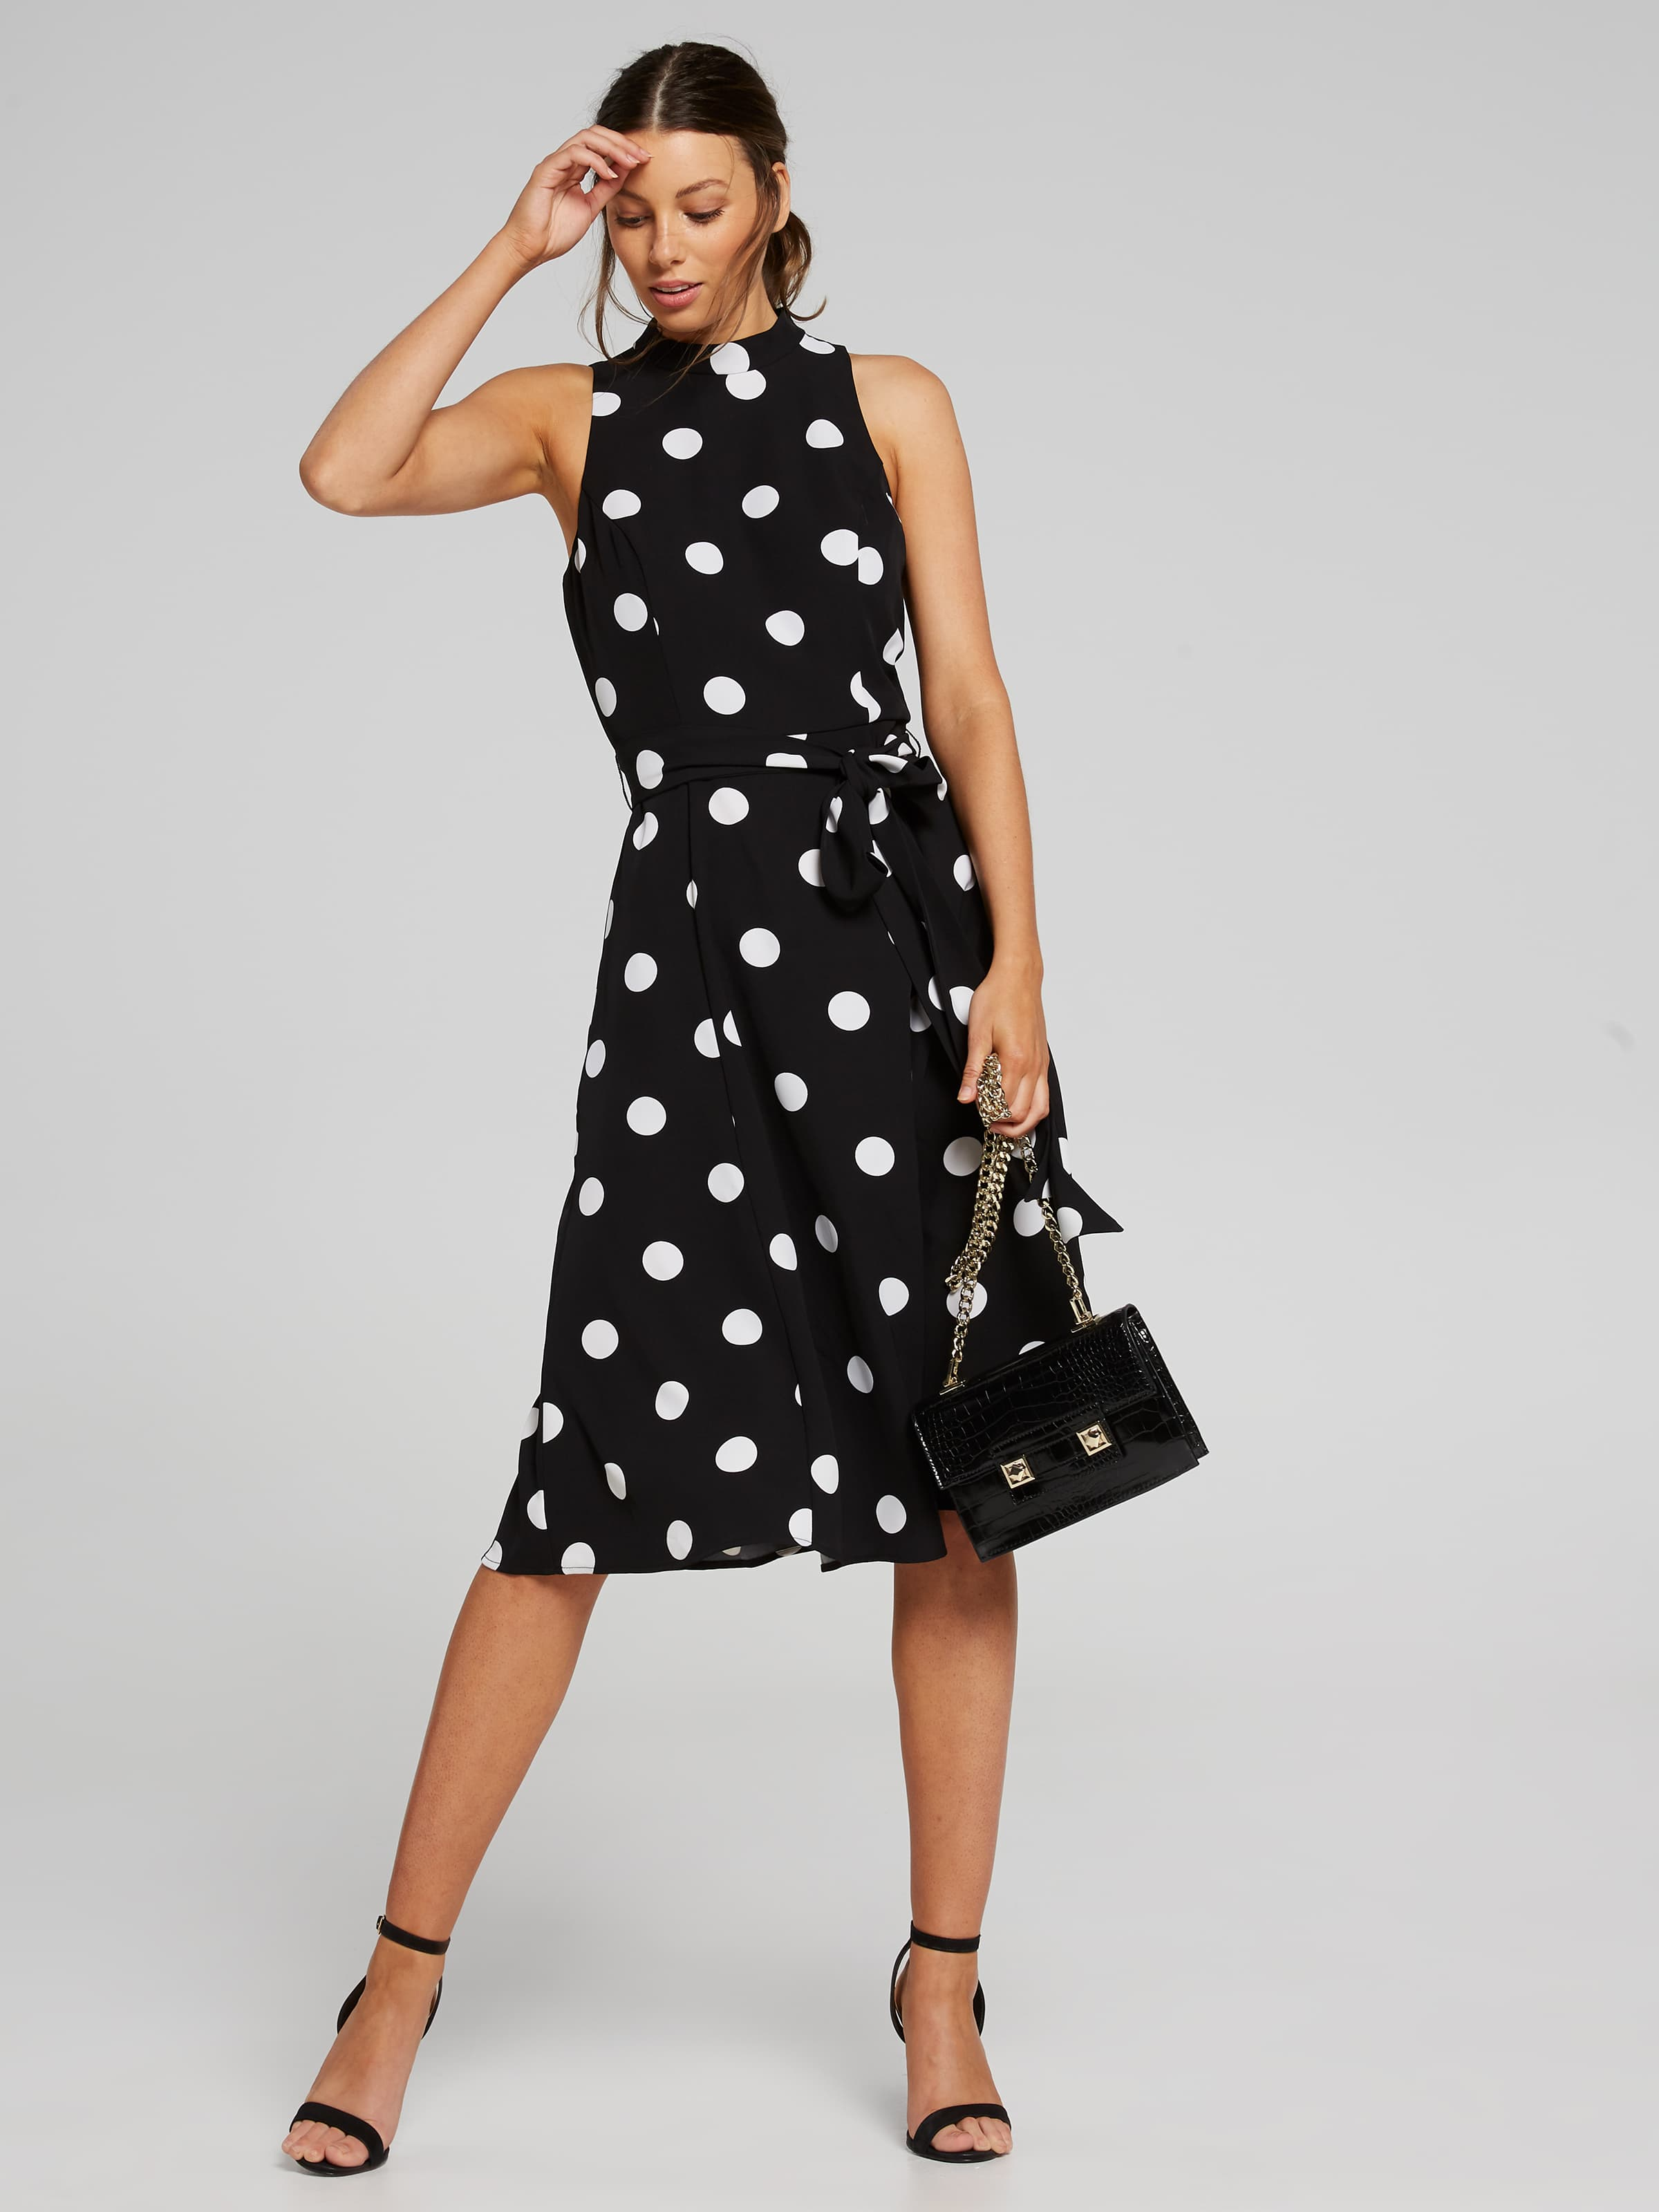 c54386fd1e9d ... Image for Perfect Polka Dot Midi Dress from Portmans ...